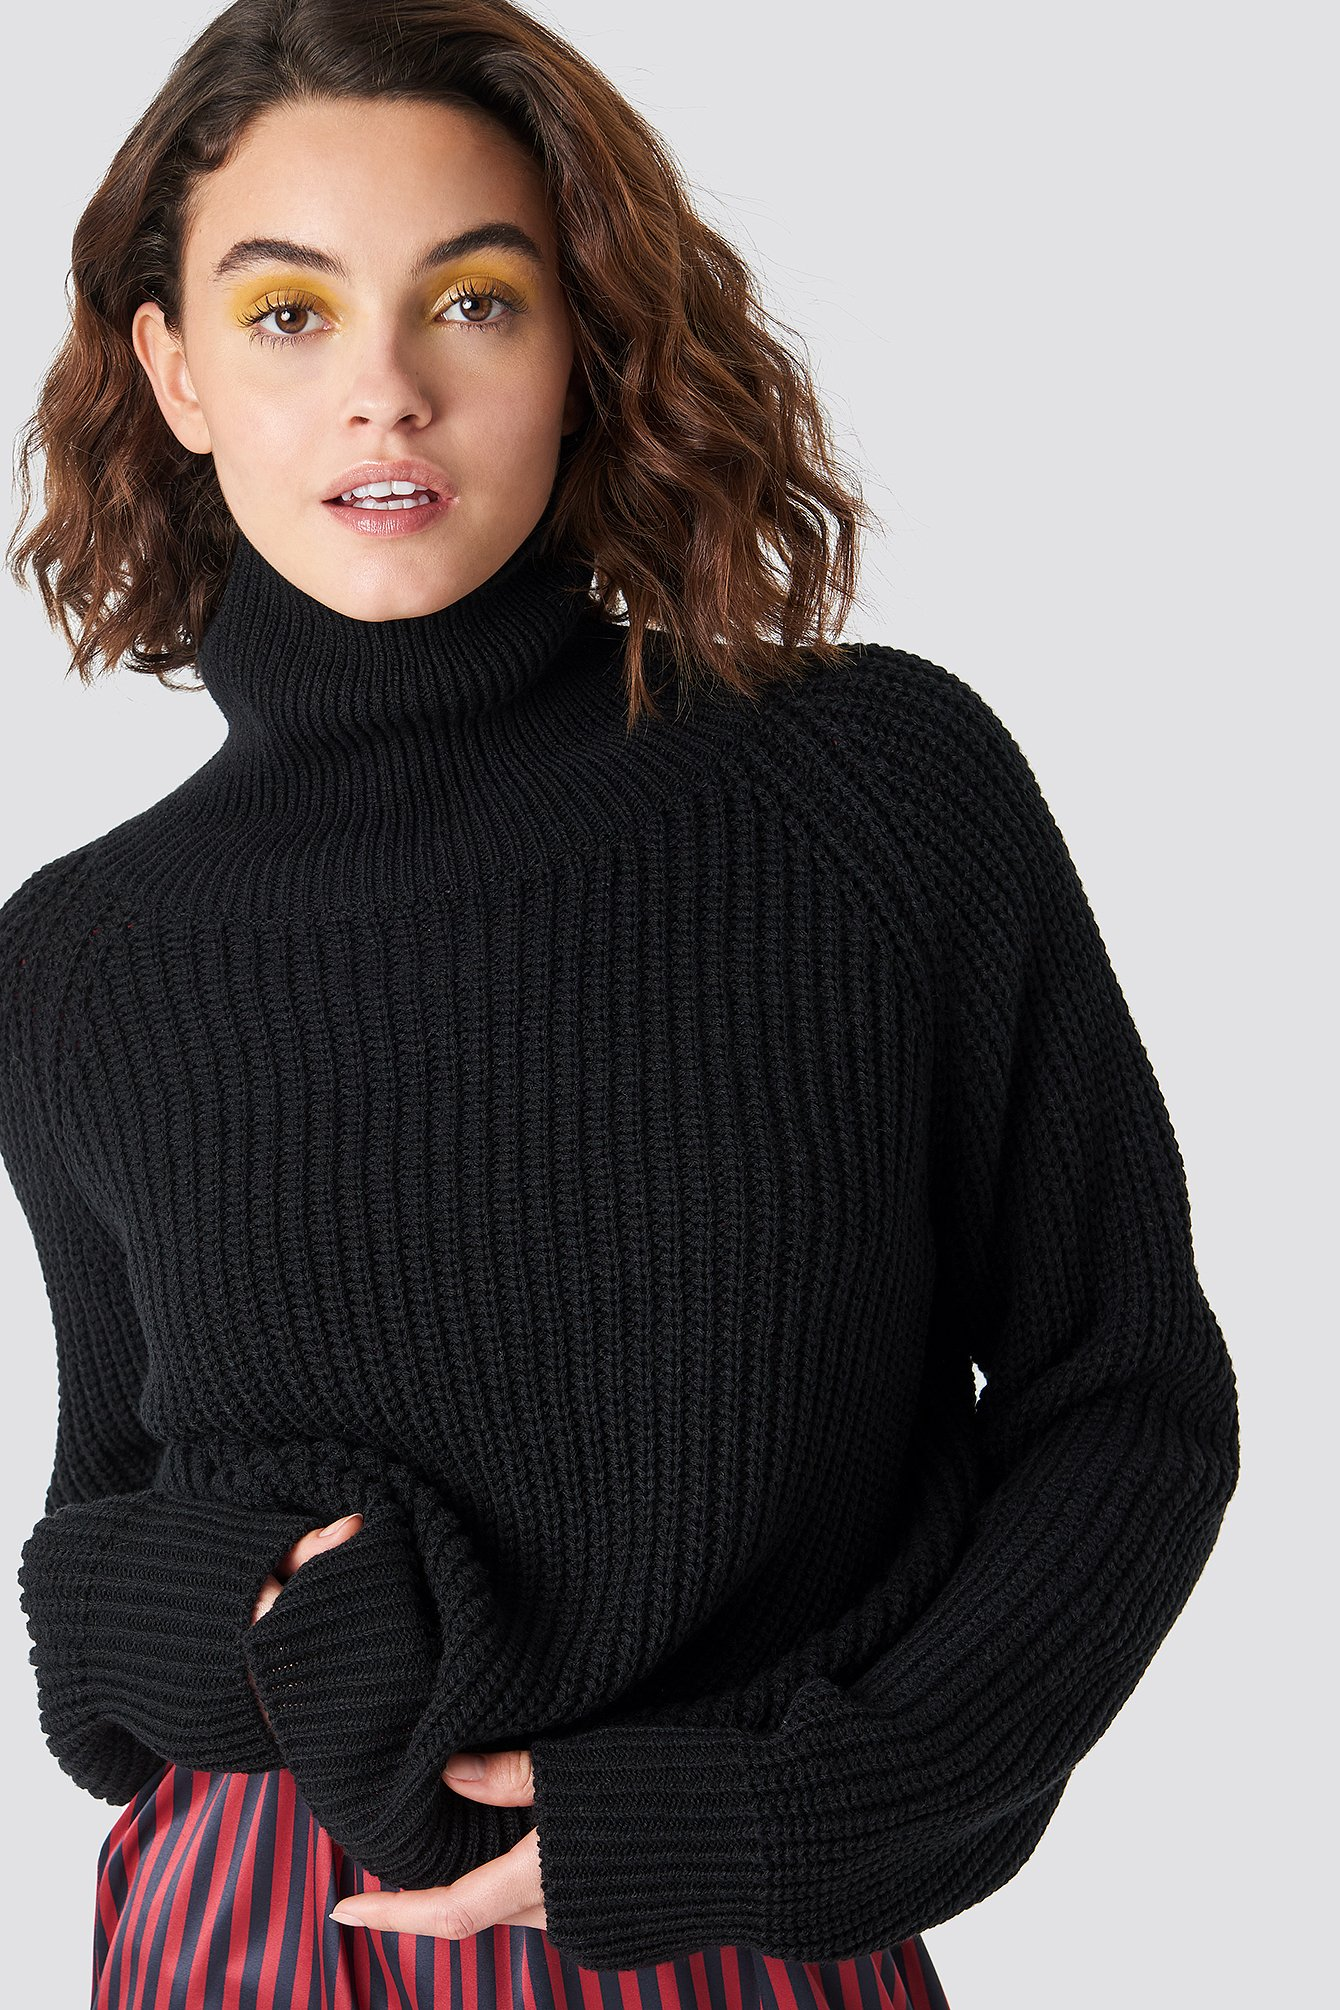 emilie briting x na-kd -  Structured High Neck Polo Knit - Black